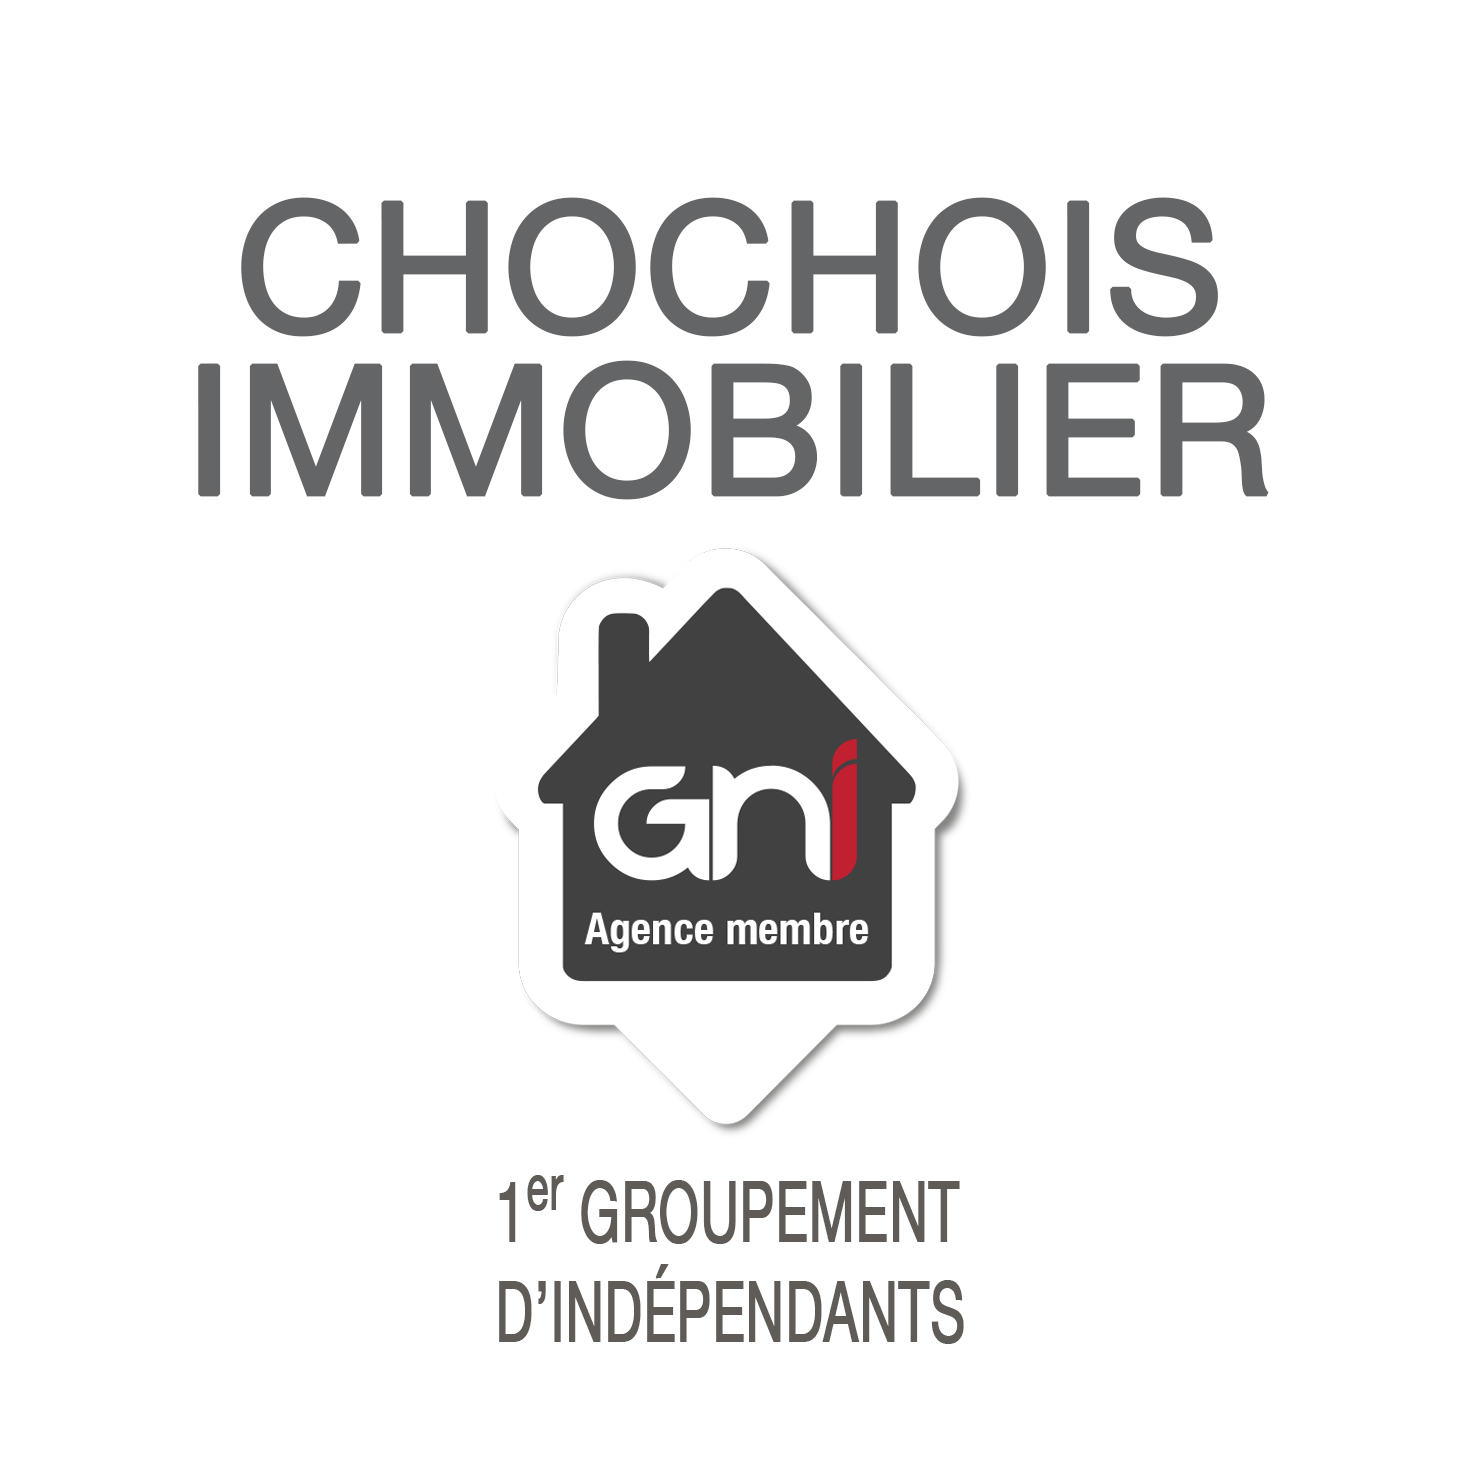 CHOCHOIS IMMOBILIER